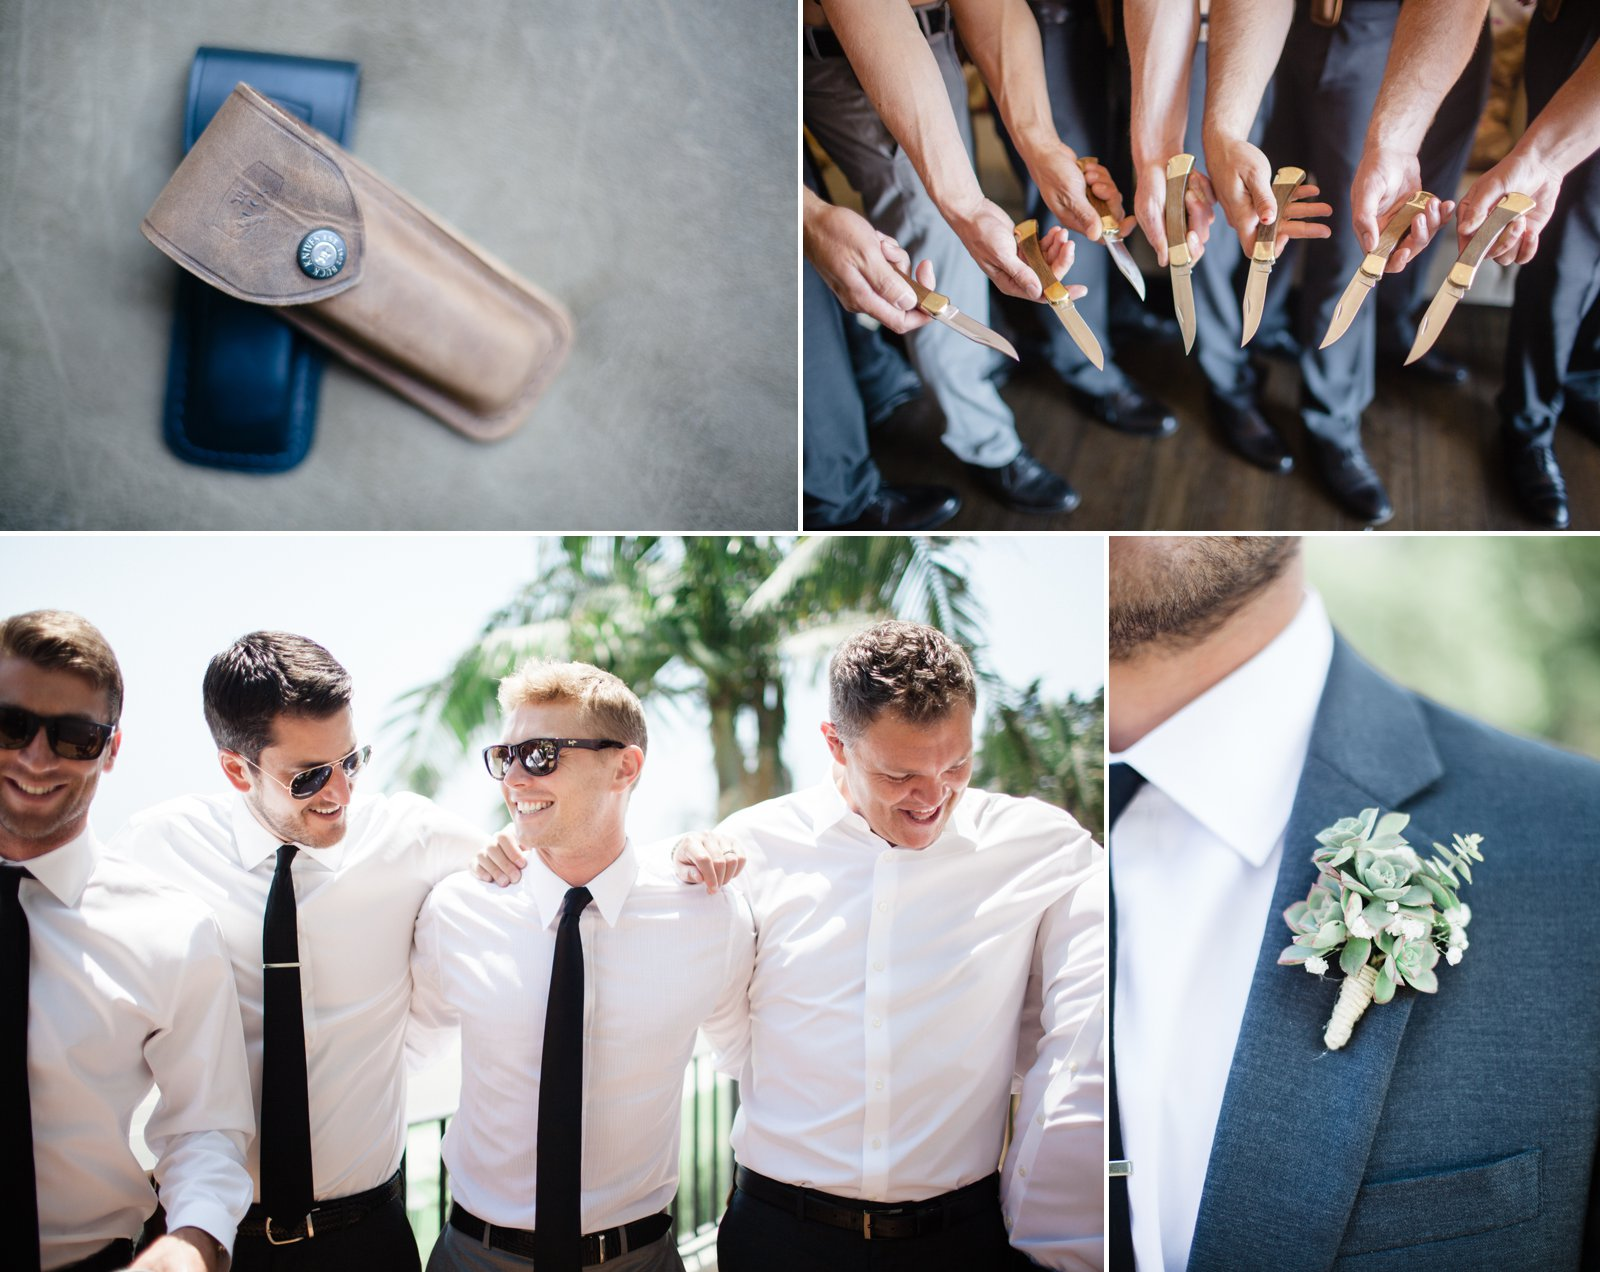 Groom gives Buck knives to his guys as their Groomsmen gifts.